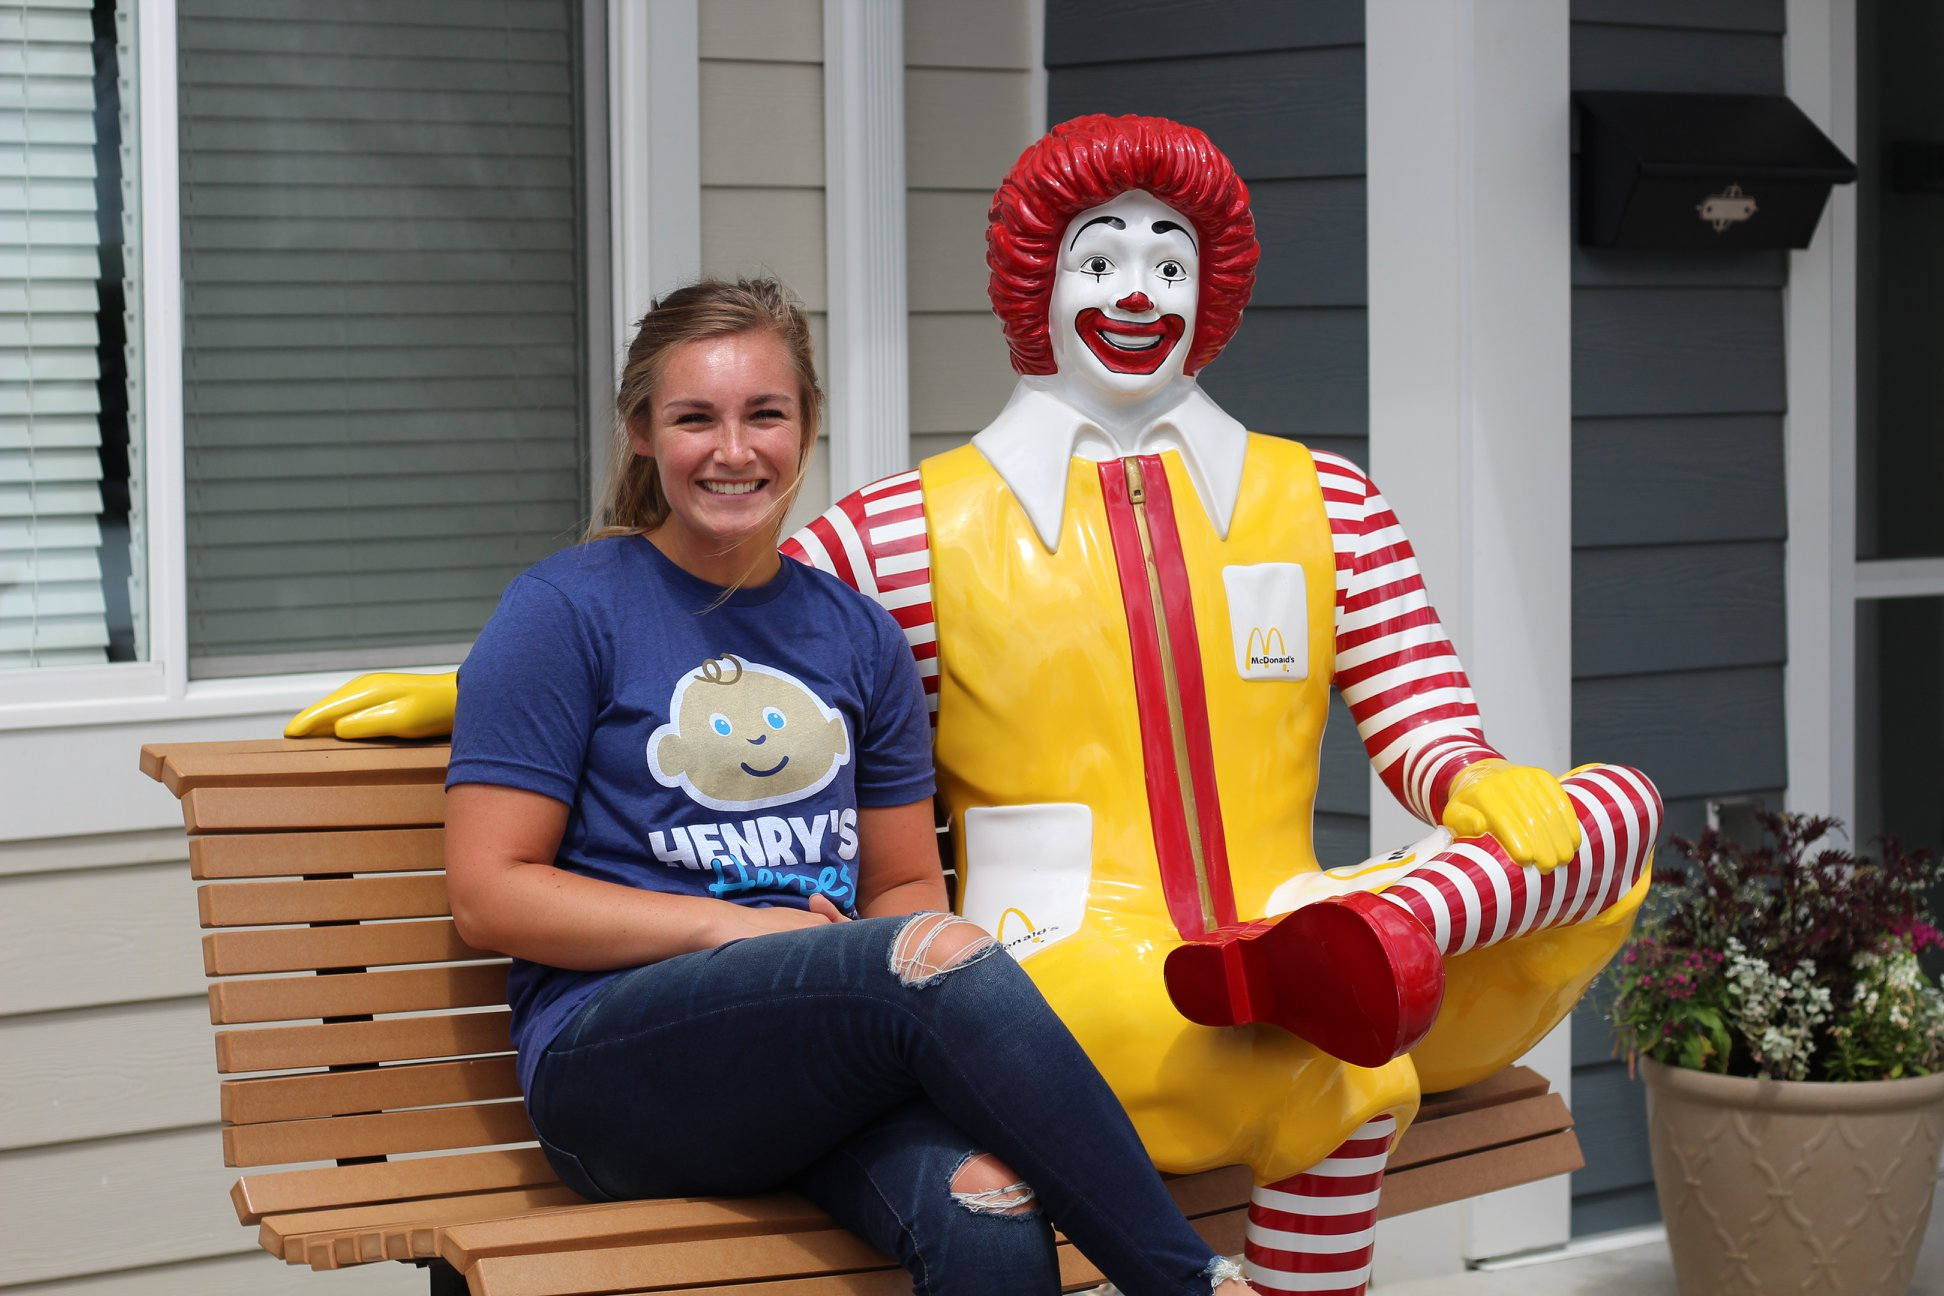 Lexie making friends with Ronald